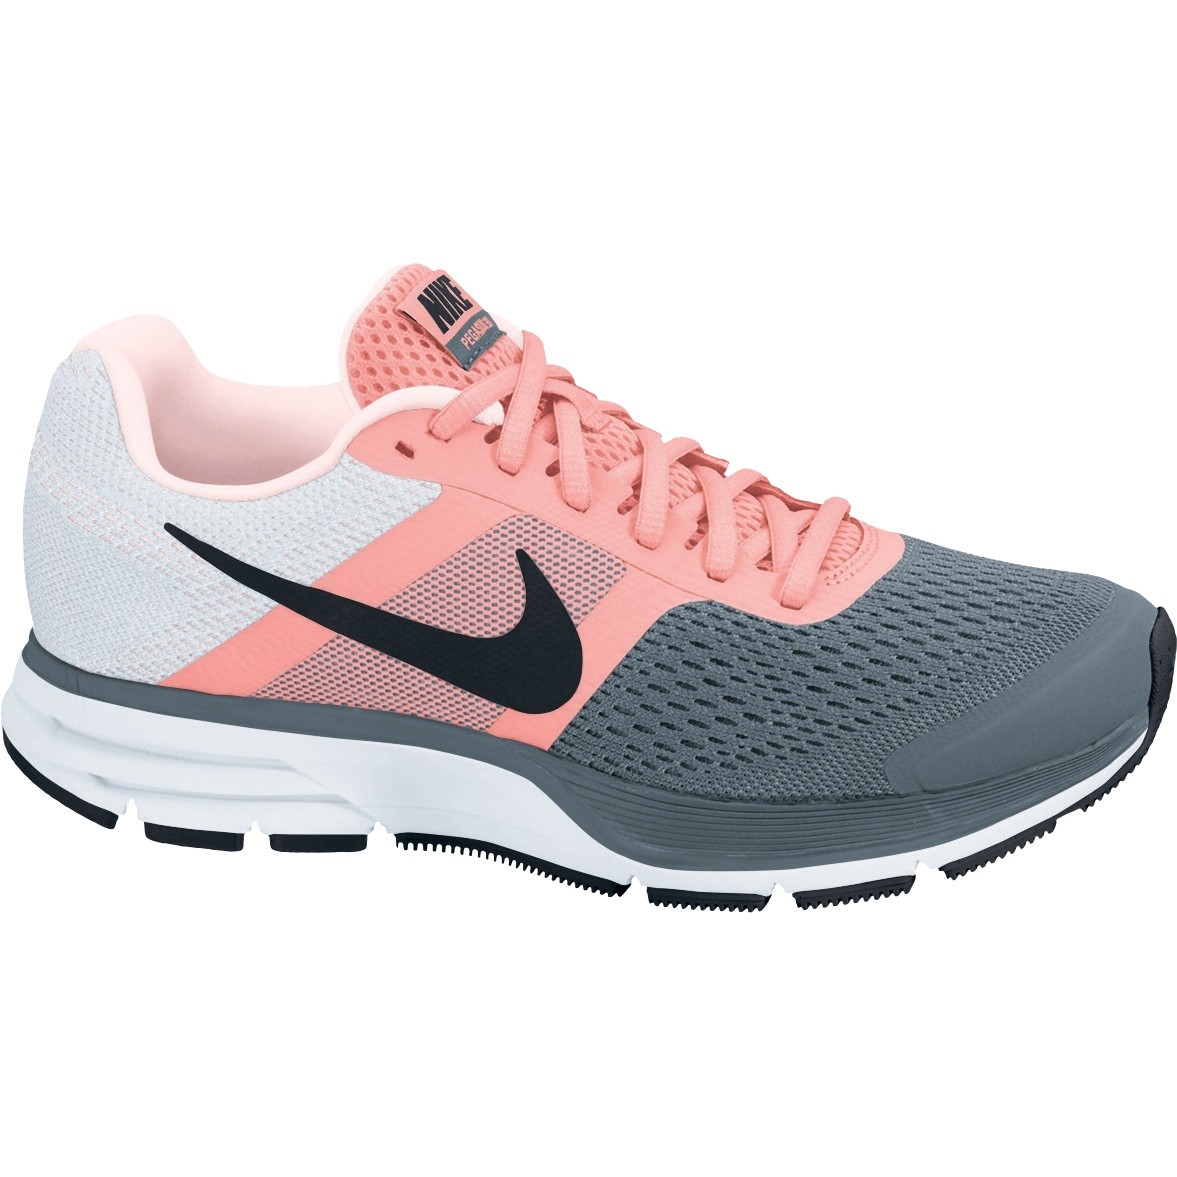 nike pegasus 30 damen. Black Bedroom Furniture Sets. Home Design Ideas